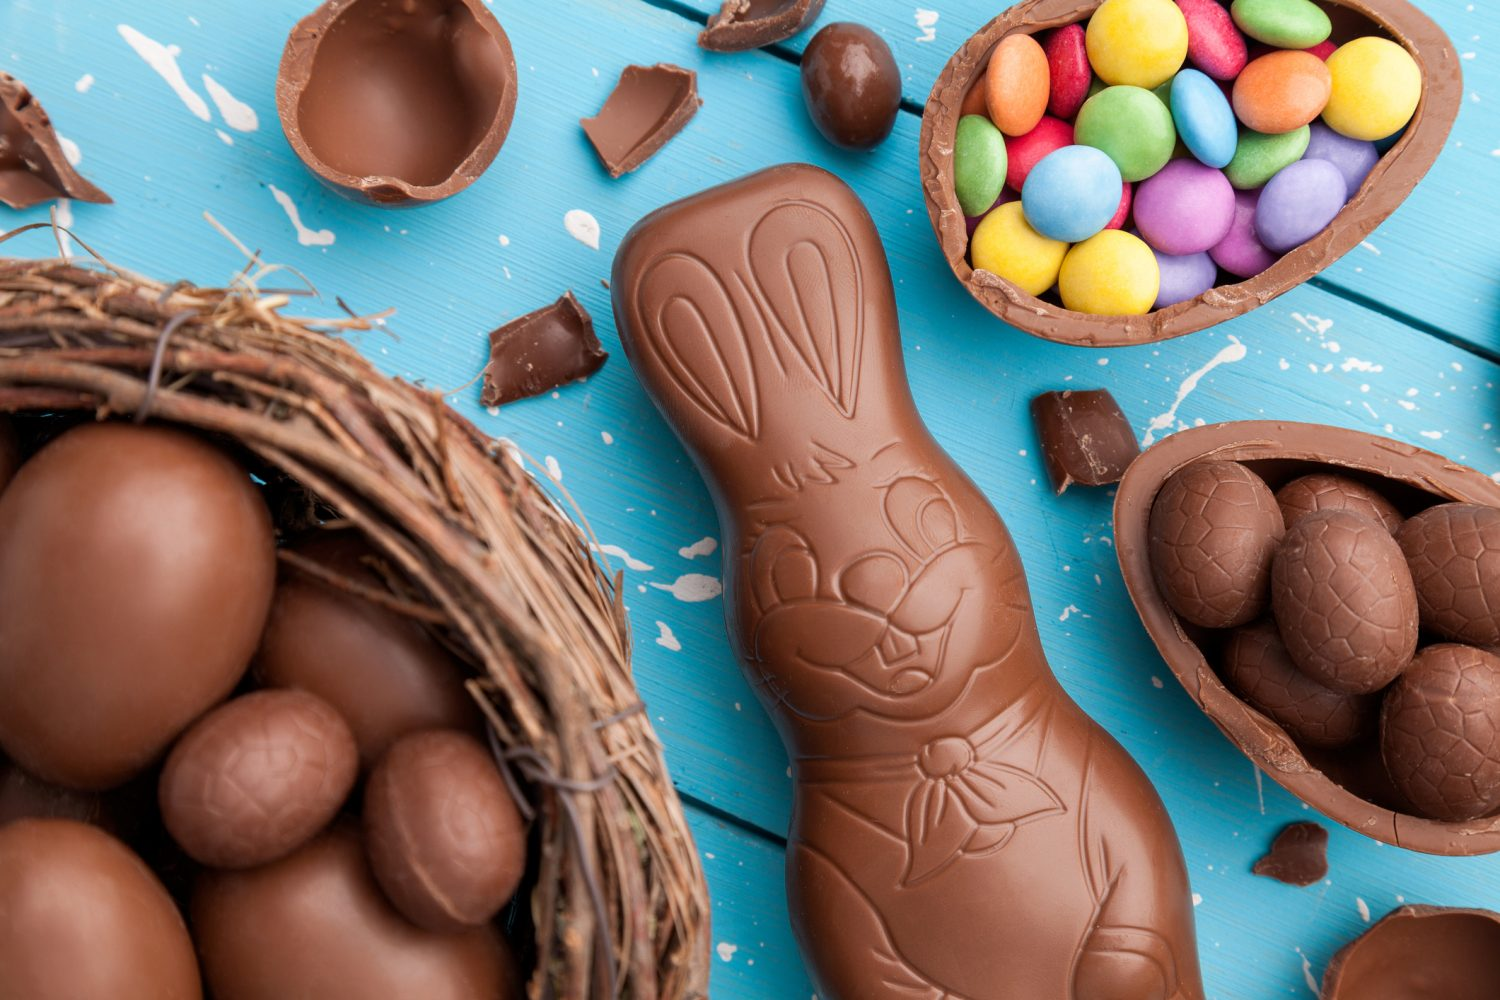 Let's get real with approaching your nutrition over Easter Image